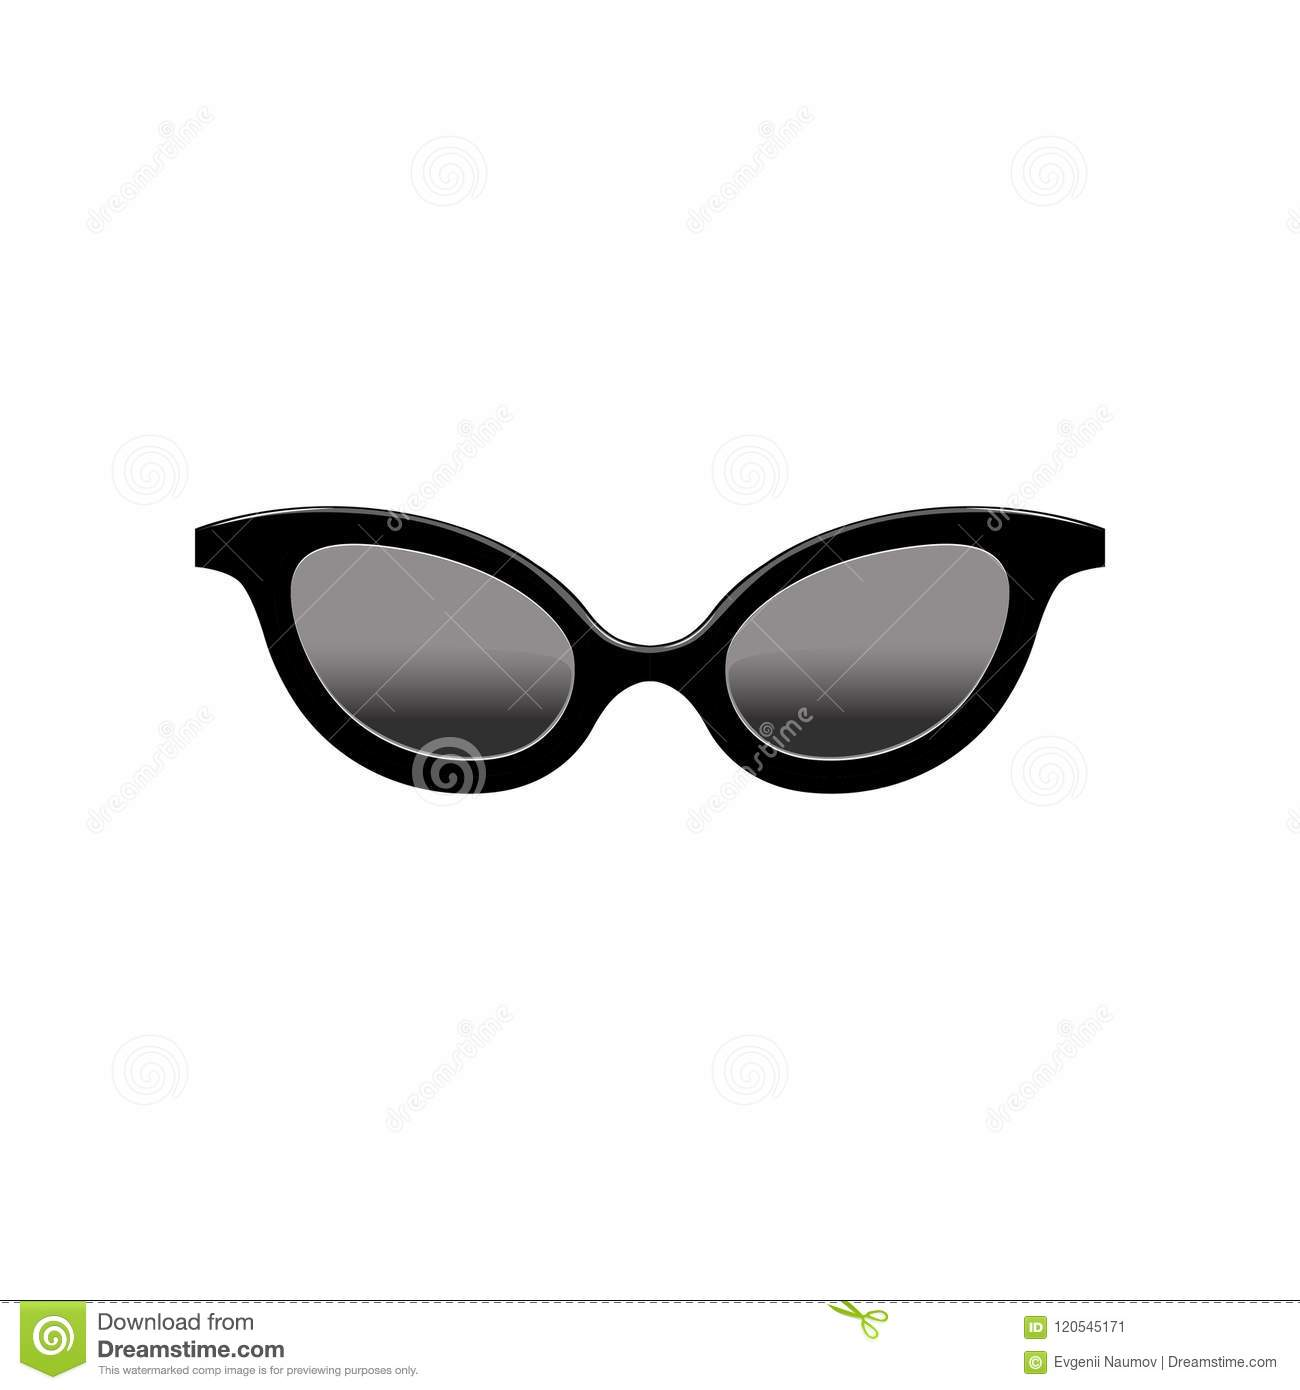 0c86ba9cc0 Cartoon style icon of retro women`s cat eye sunglasses with black lenses  and plastic frame. Fashion accessory. Element for mobile application.